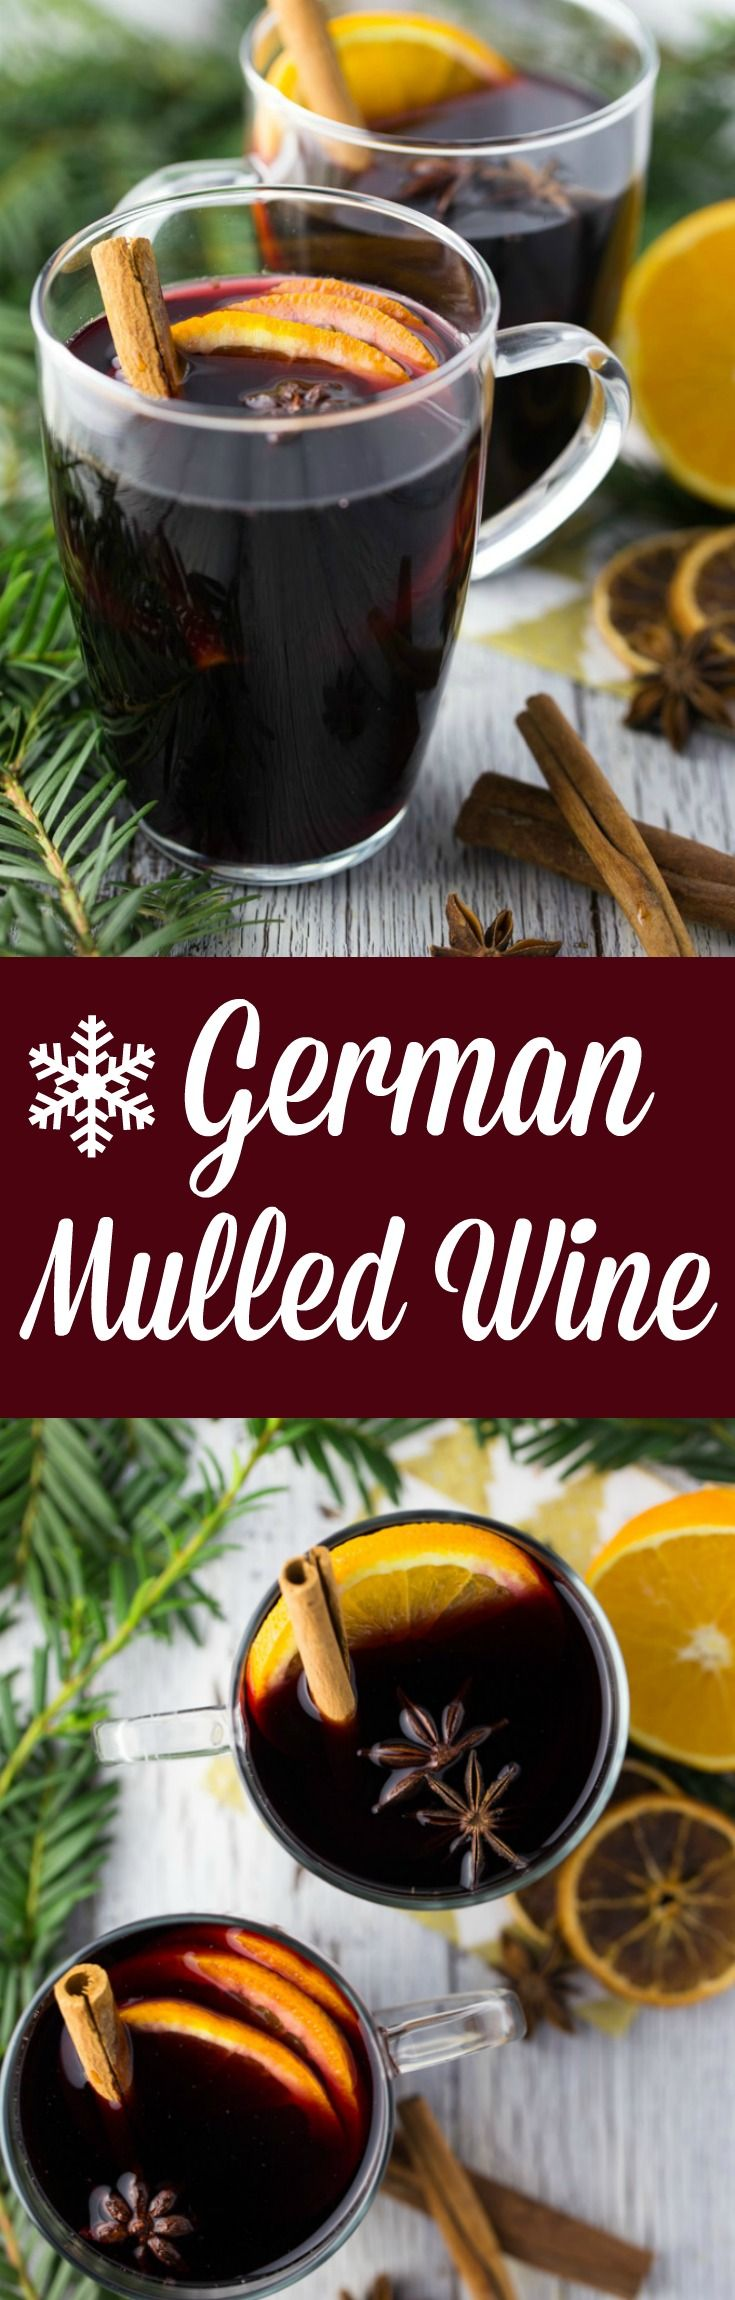 This German mulled wine is the perfect Christmas drink! It